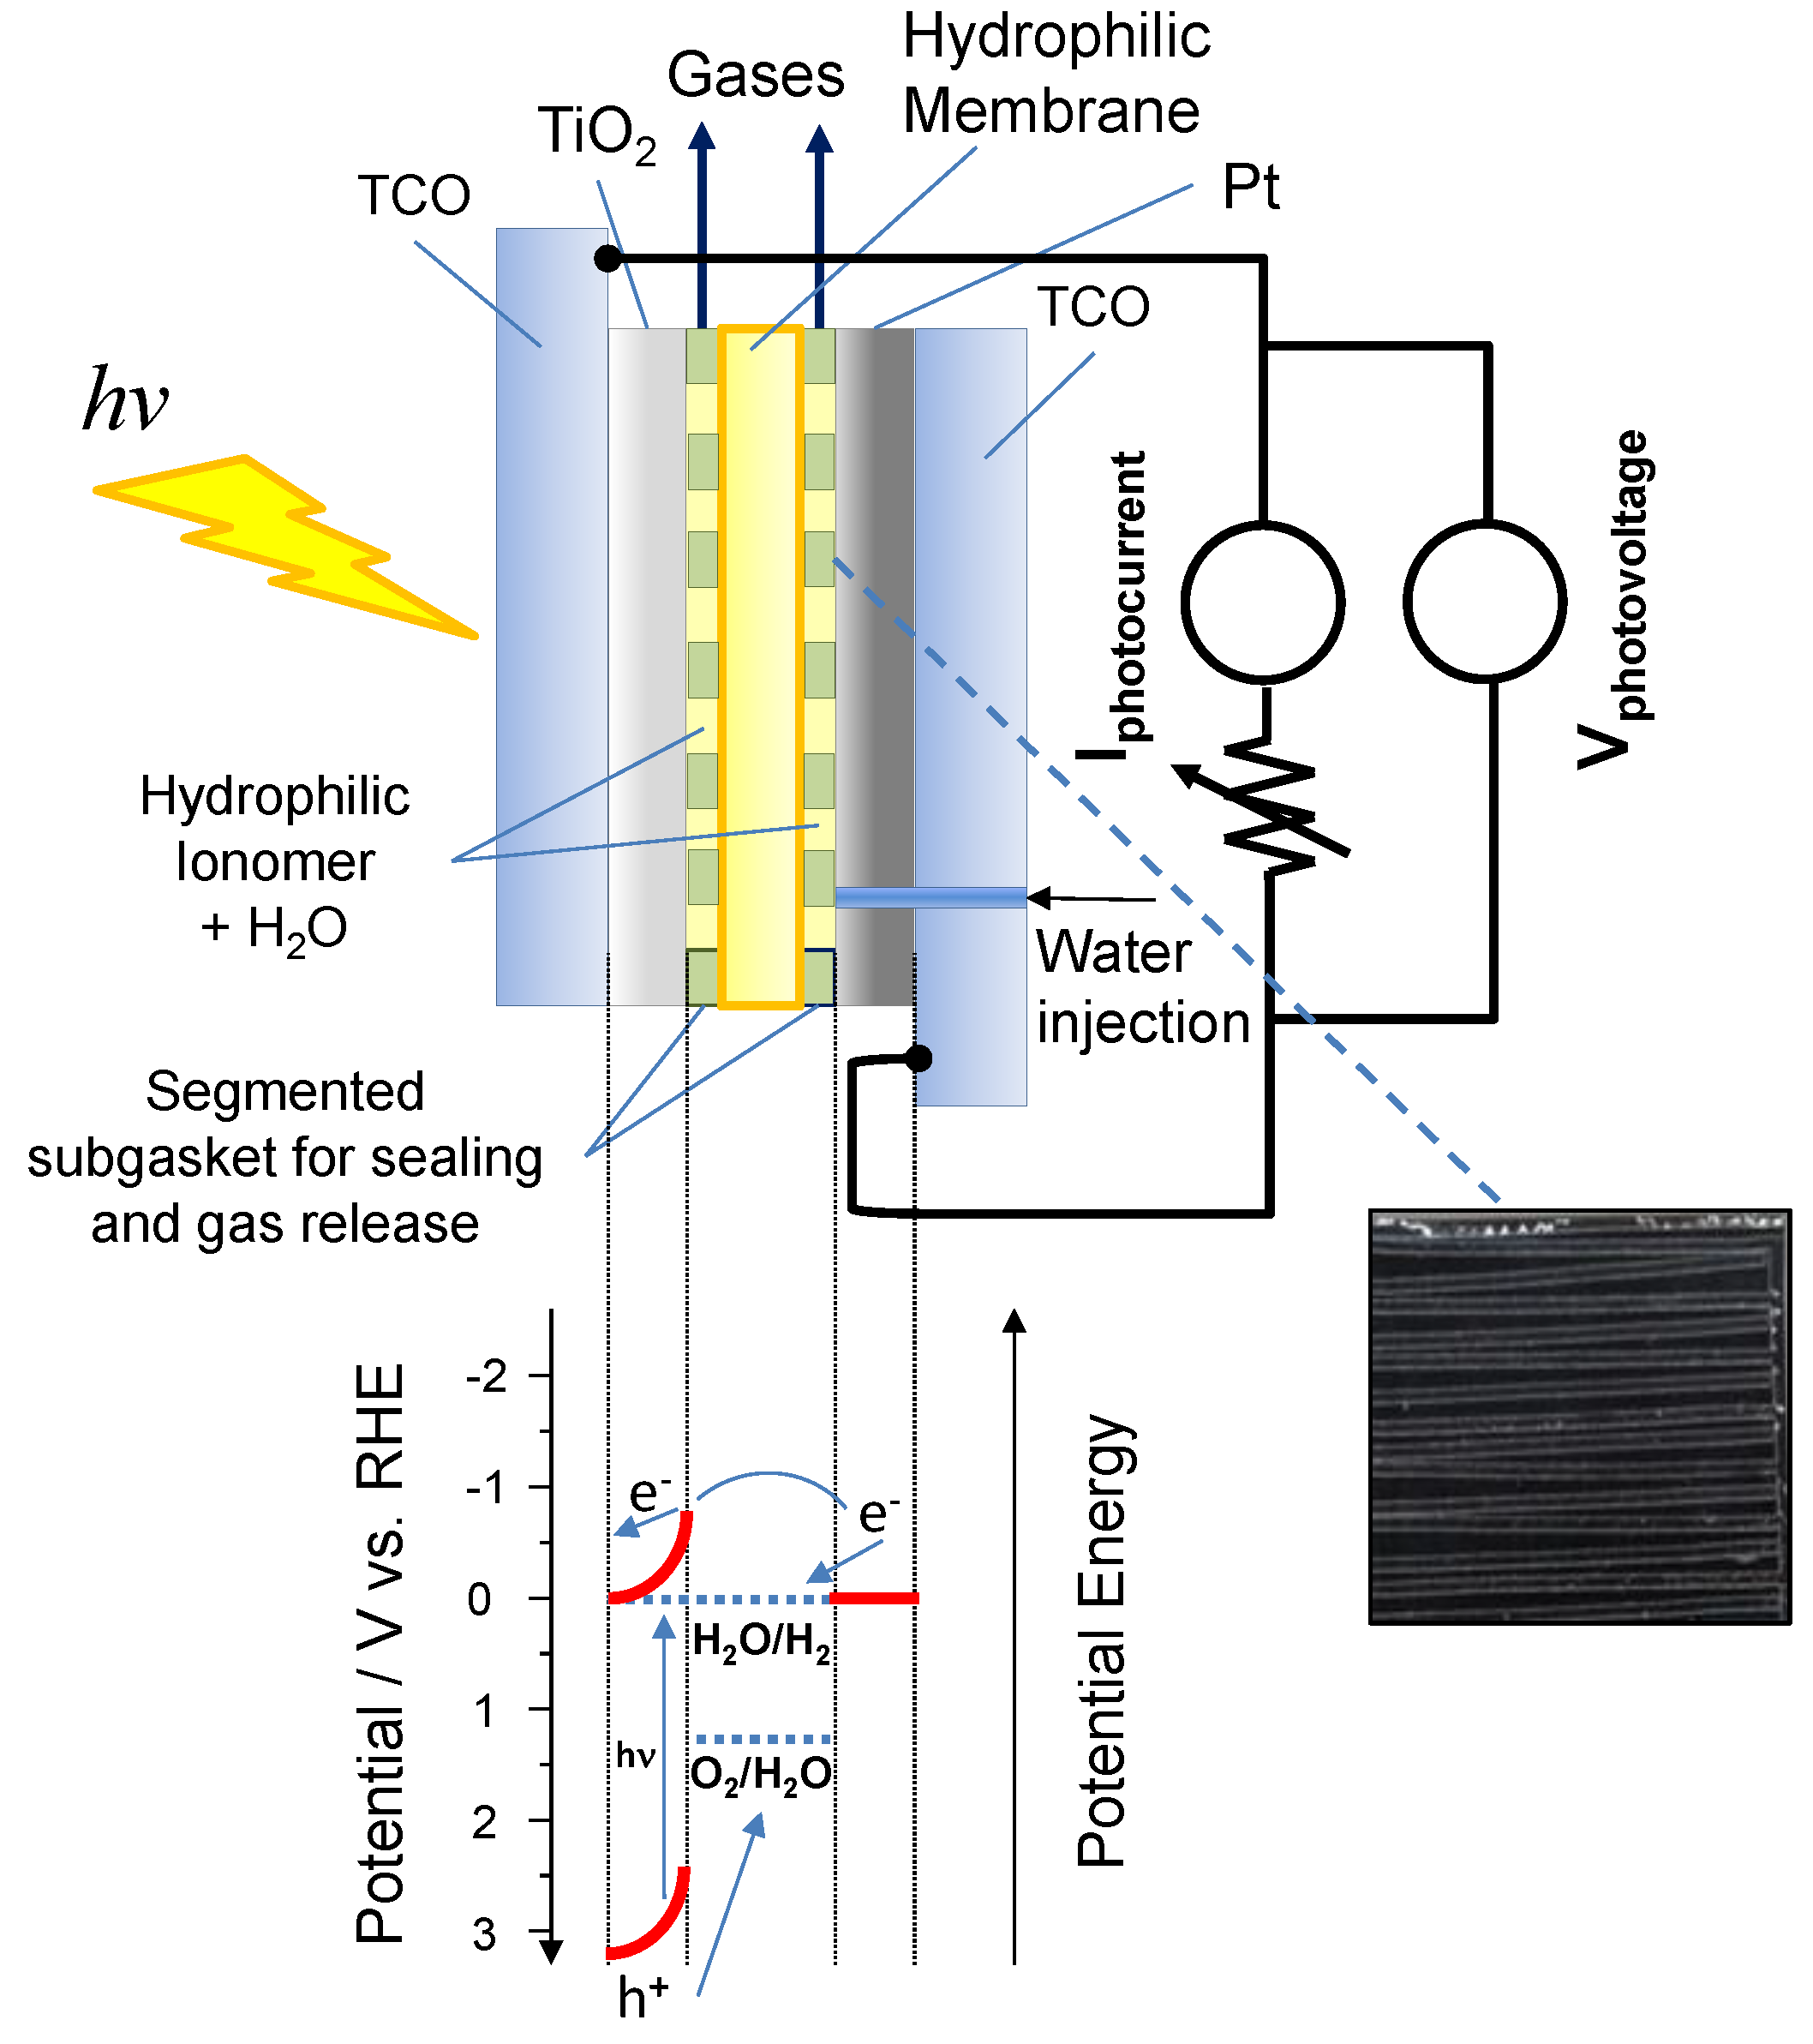 membranes free full text polymer electrolyte membranes for water rh mdpi com Hydrogen Diagram Cathode and Anode in Electrolysis